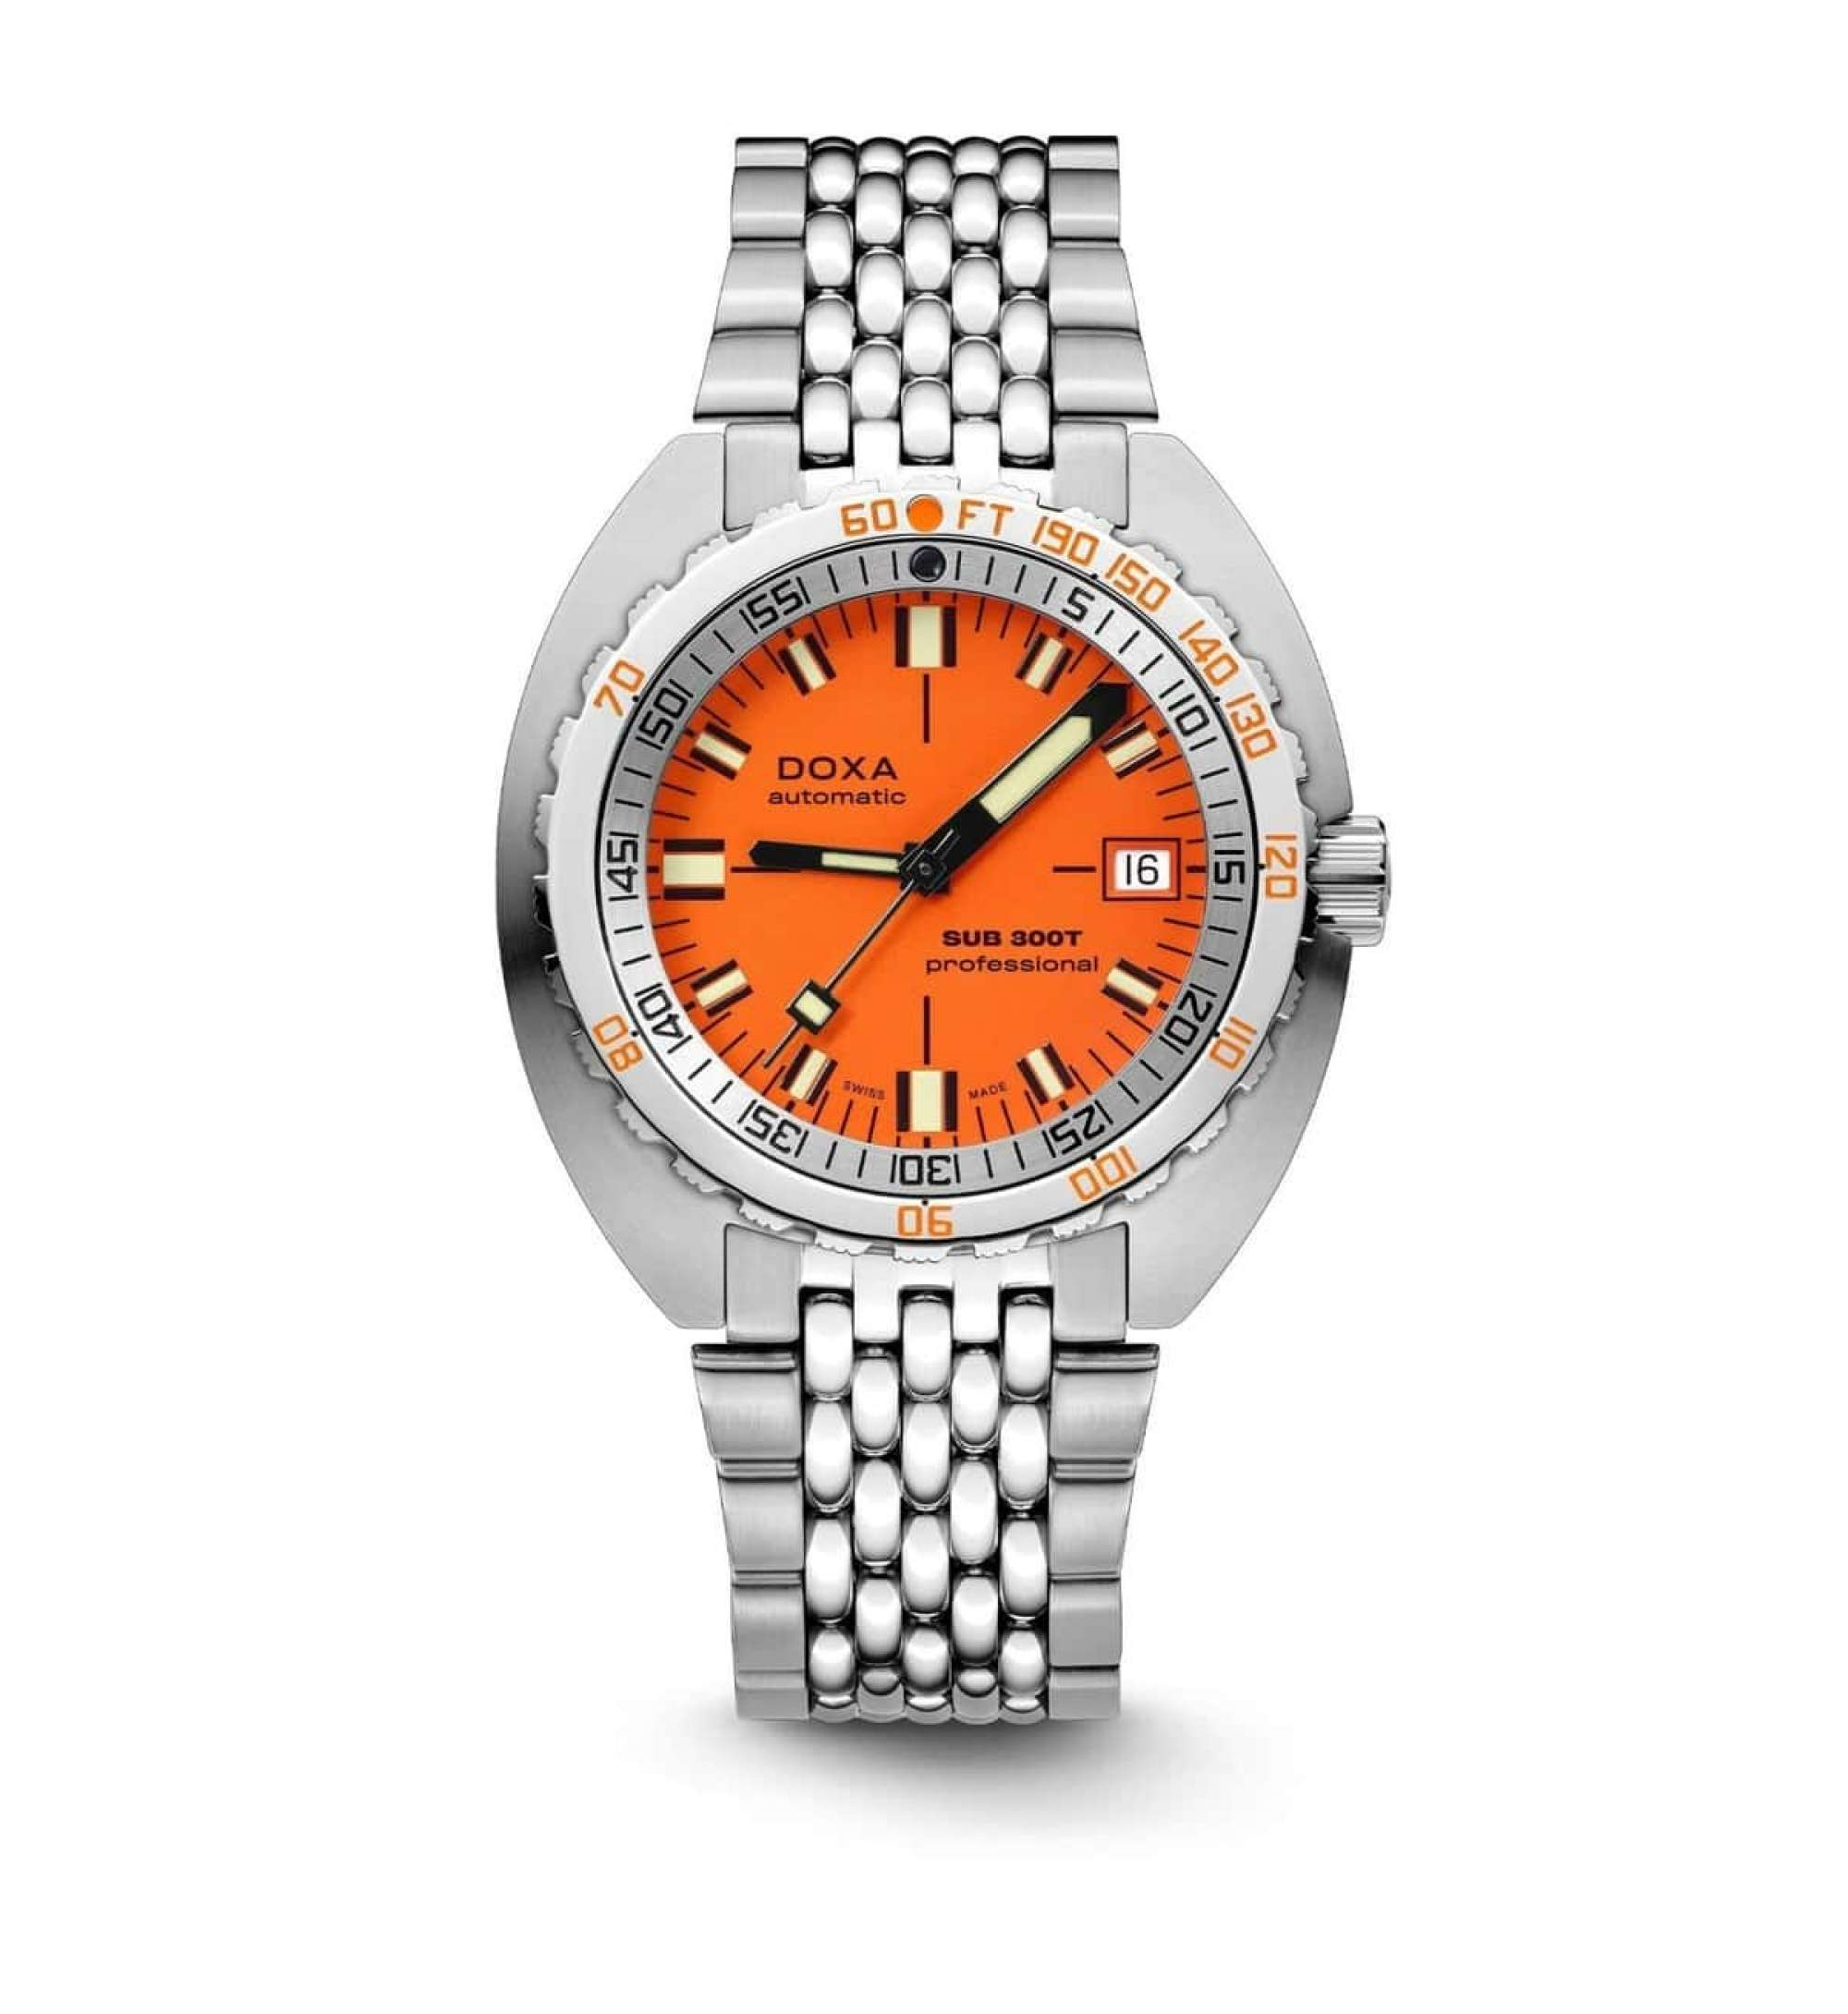 Doxa SUB 300T Professional 840.10.351.10 – Swiss Time